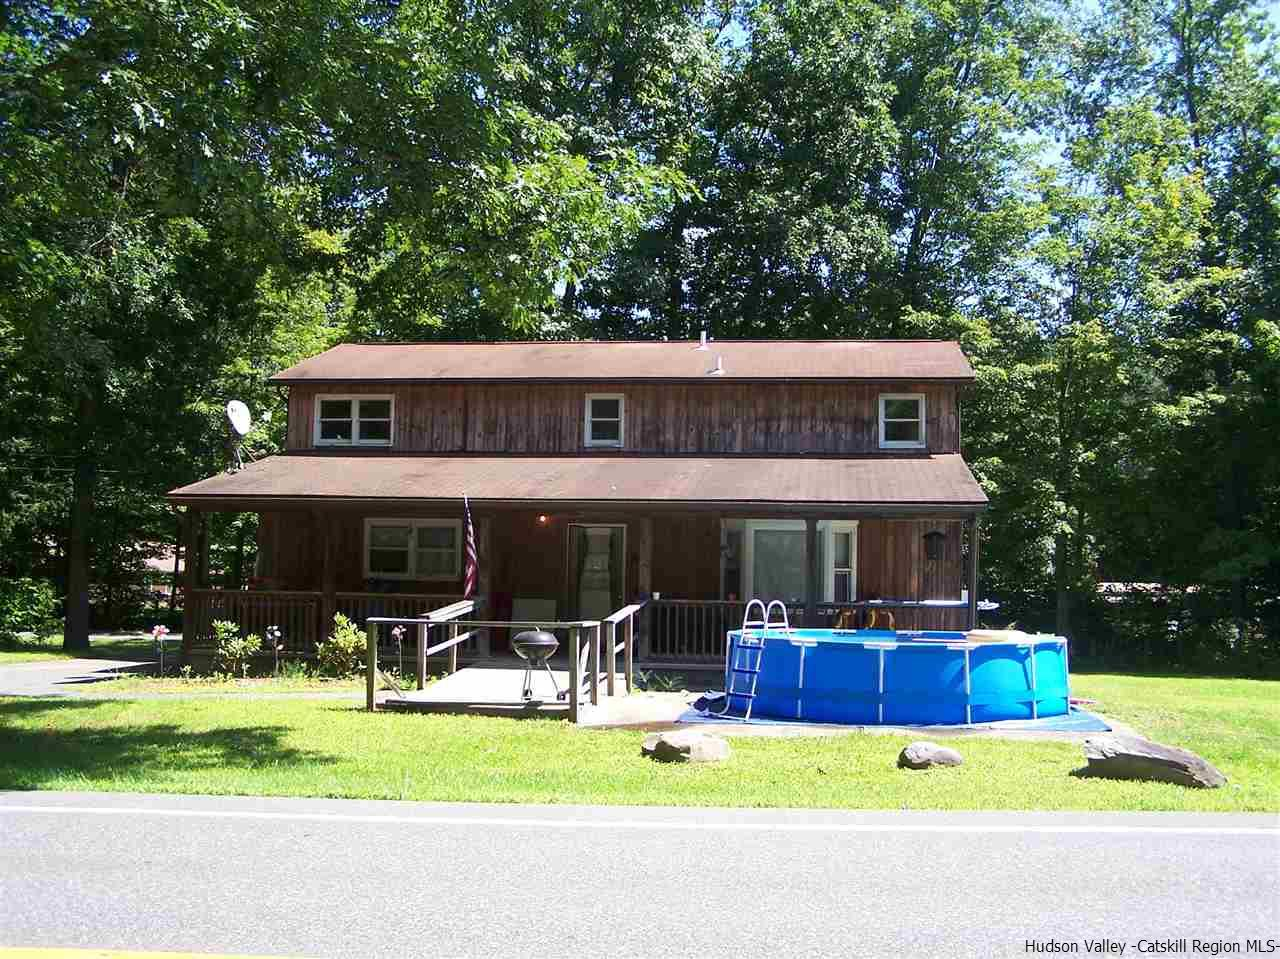 Two Family for Sale at 89 George Saile Road 89 George Saile Road Saugerties, New York 12477 United States